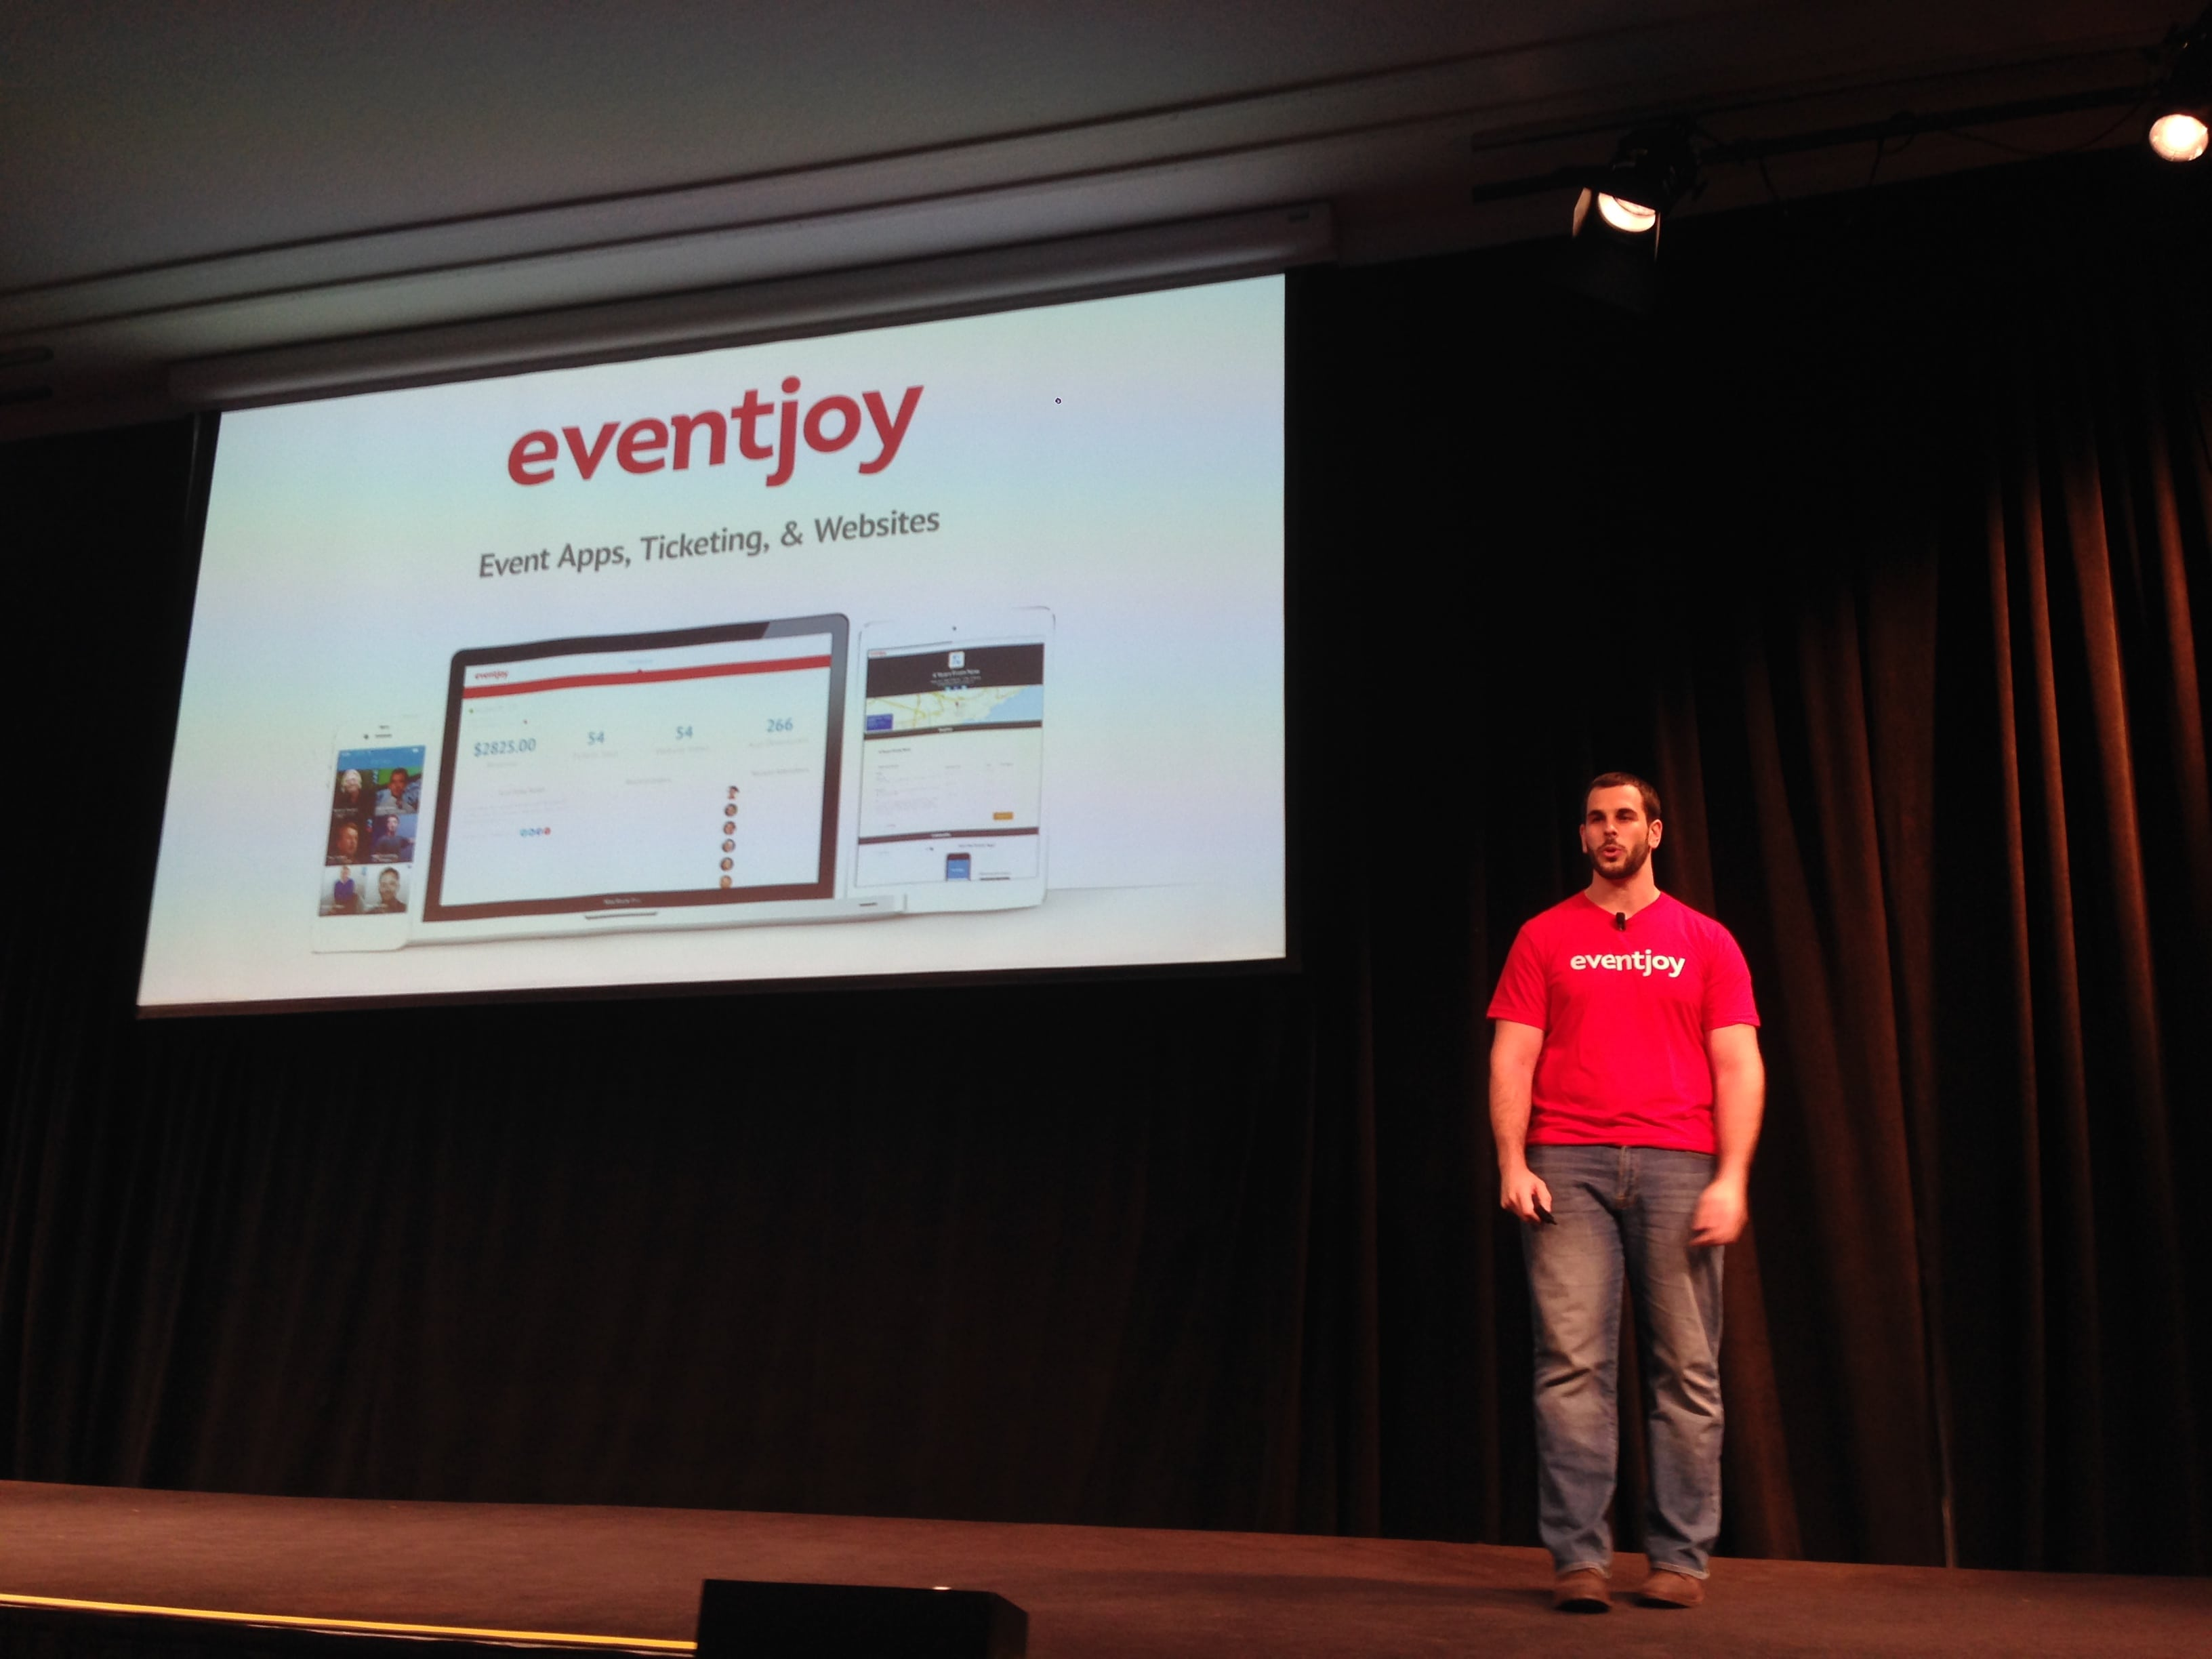 Eventjoy